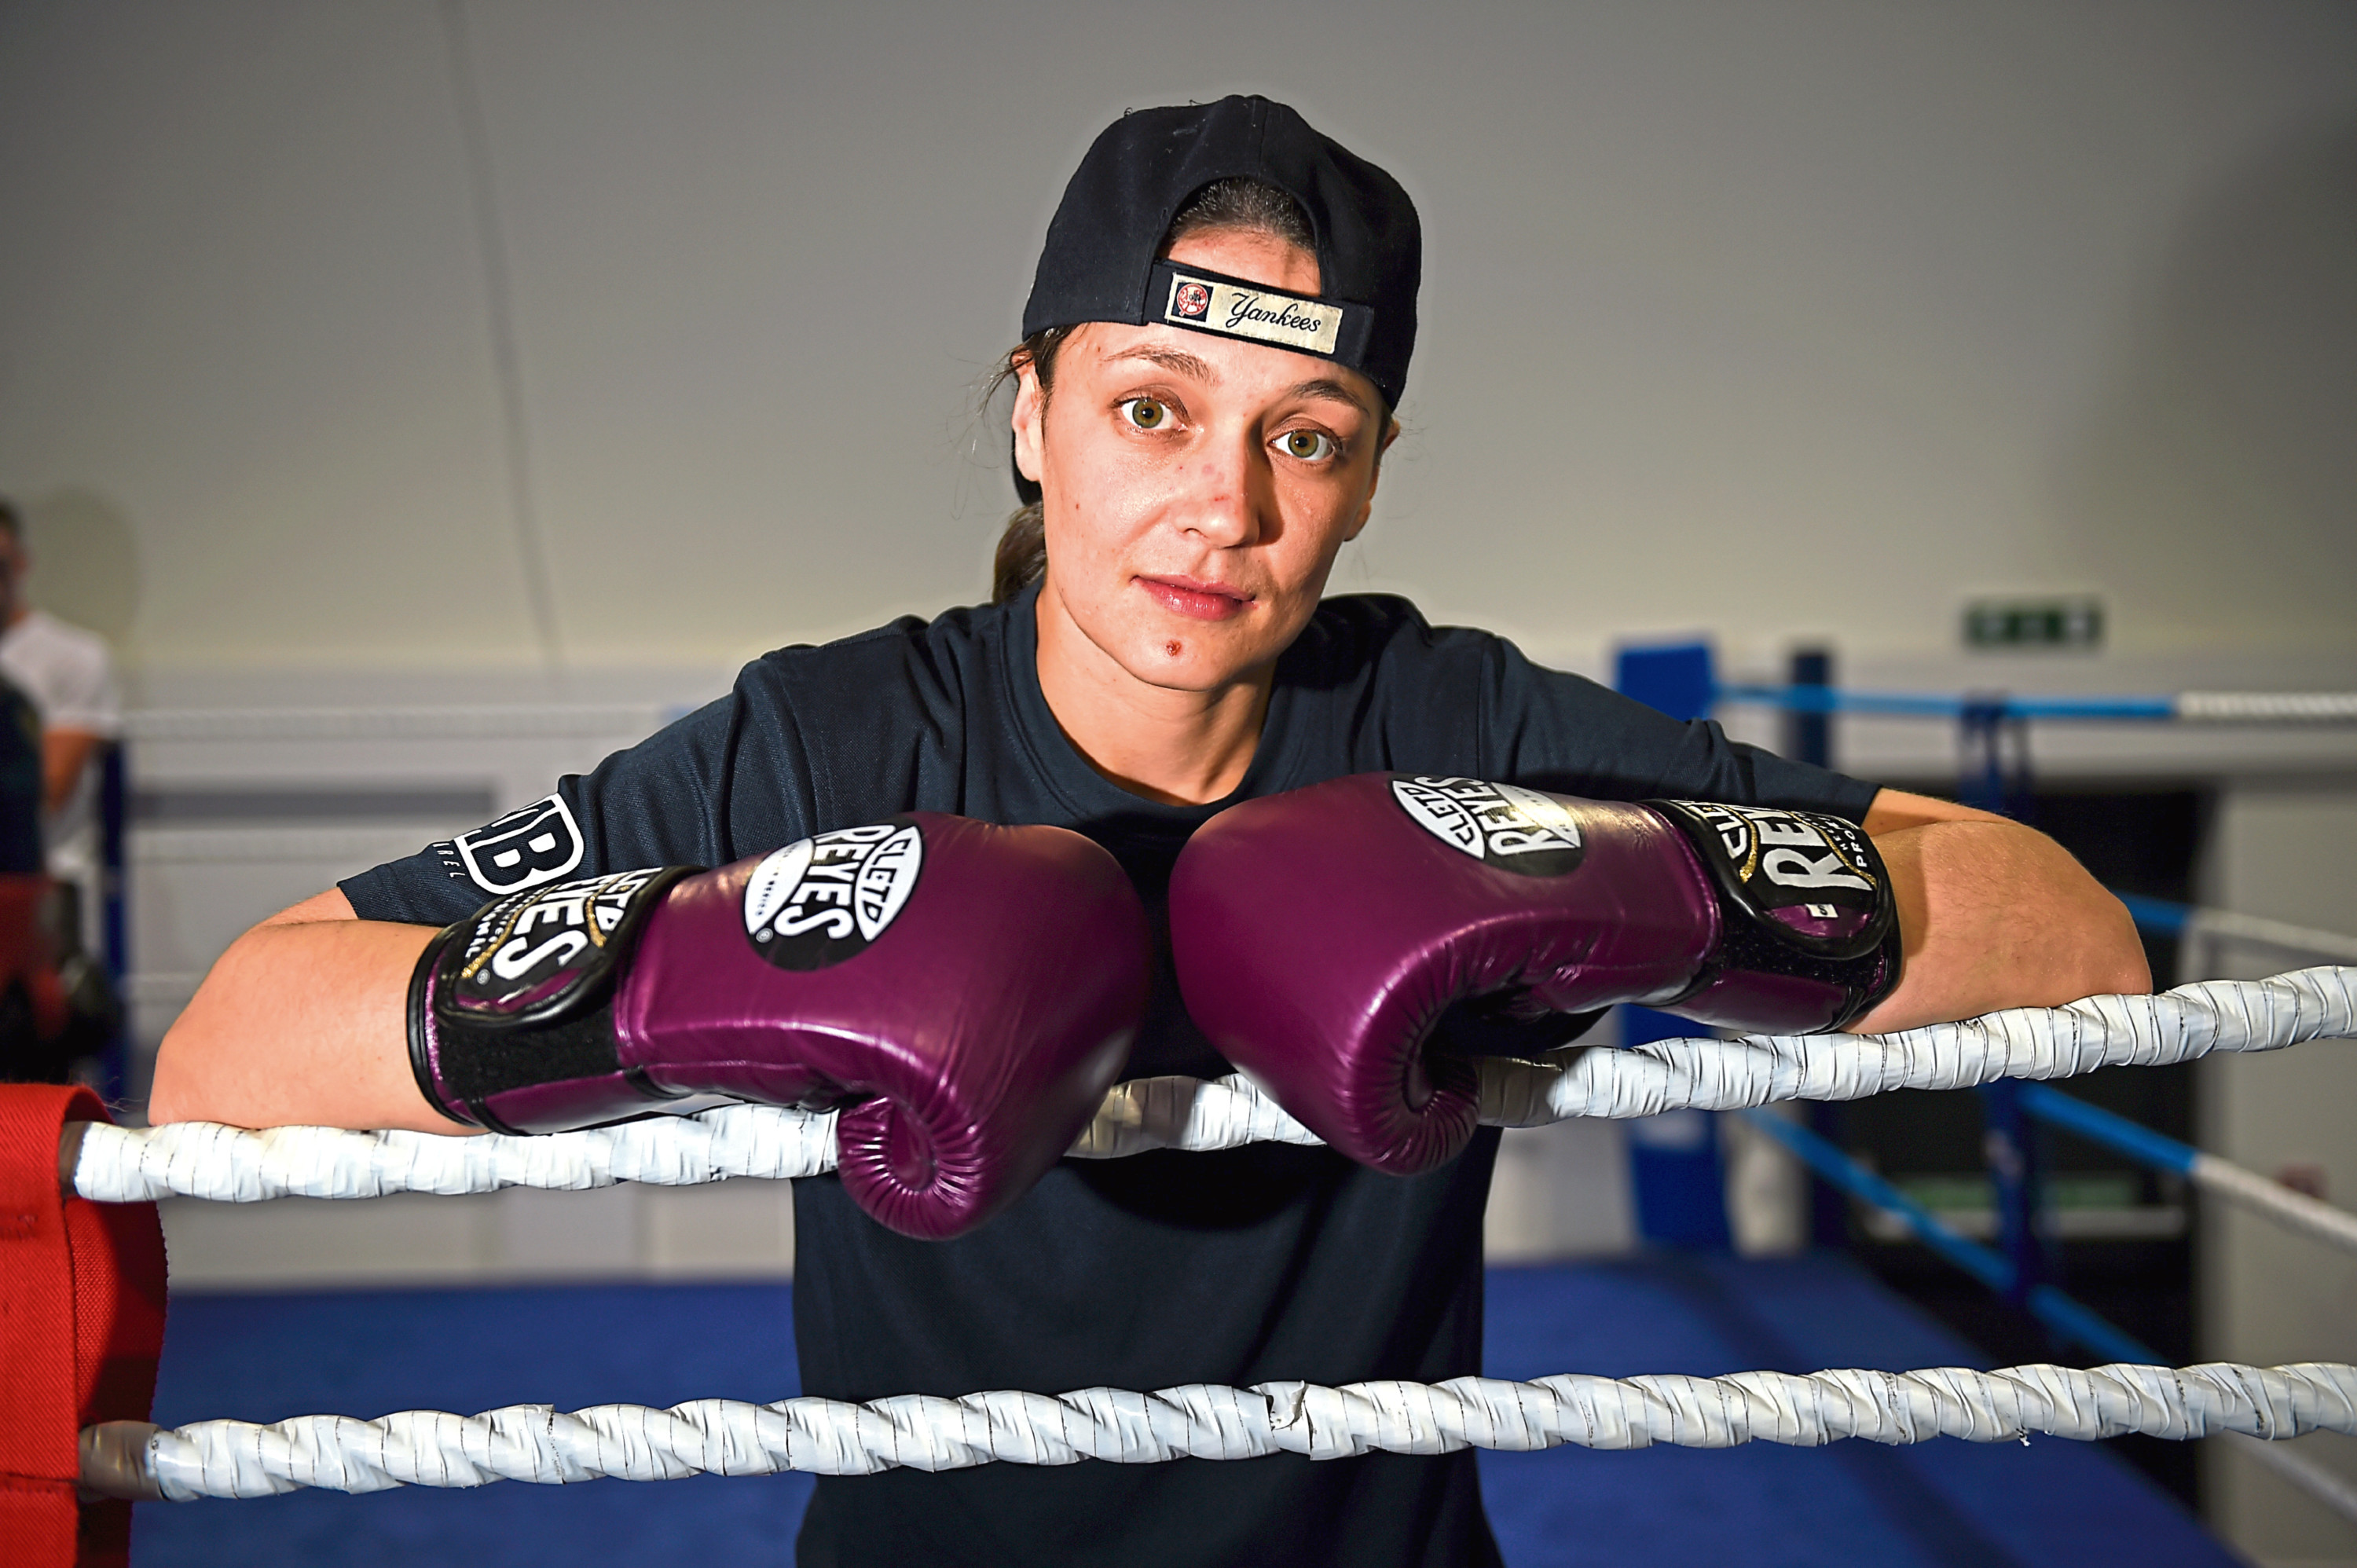 Kristen is targeting a go at a world title belt this year